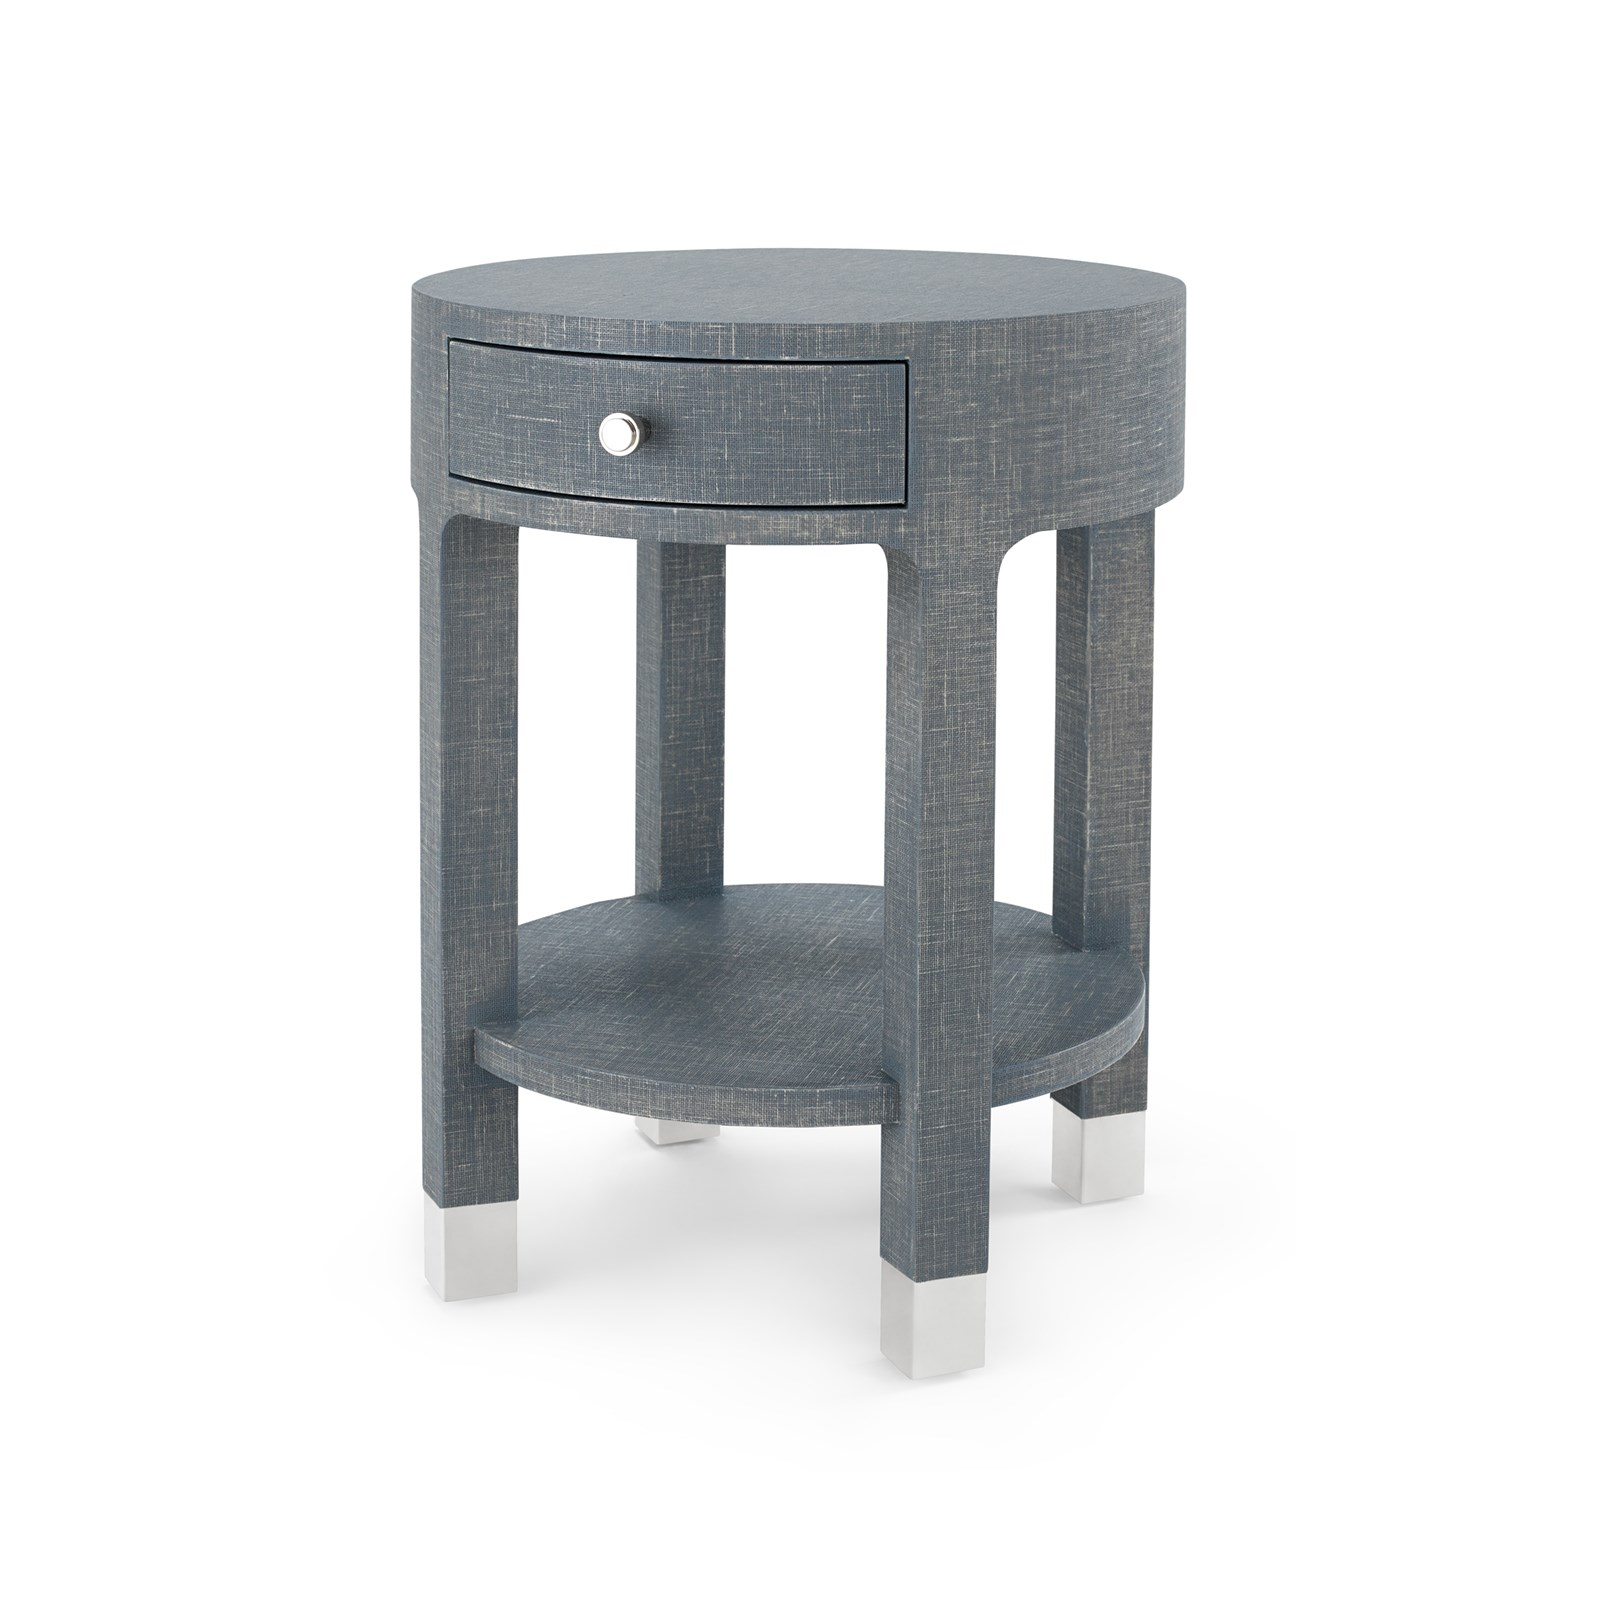 cool round side table with drawer better home garden accent multiple dakotum sugarwood unique style furniture storage glass top shelf tablecloth marble screw leg wheel metal best